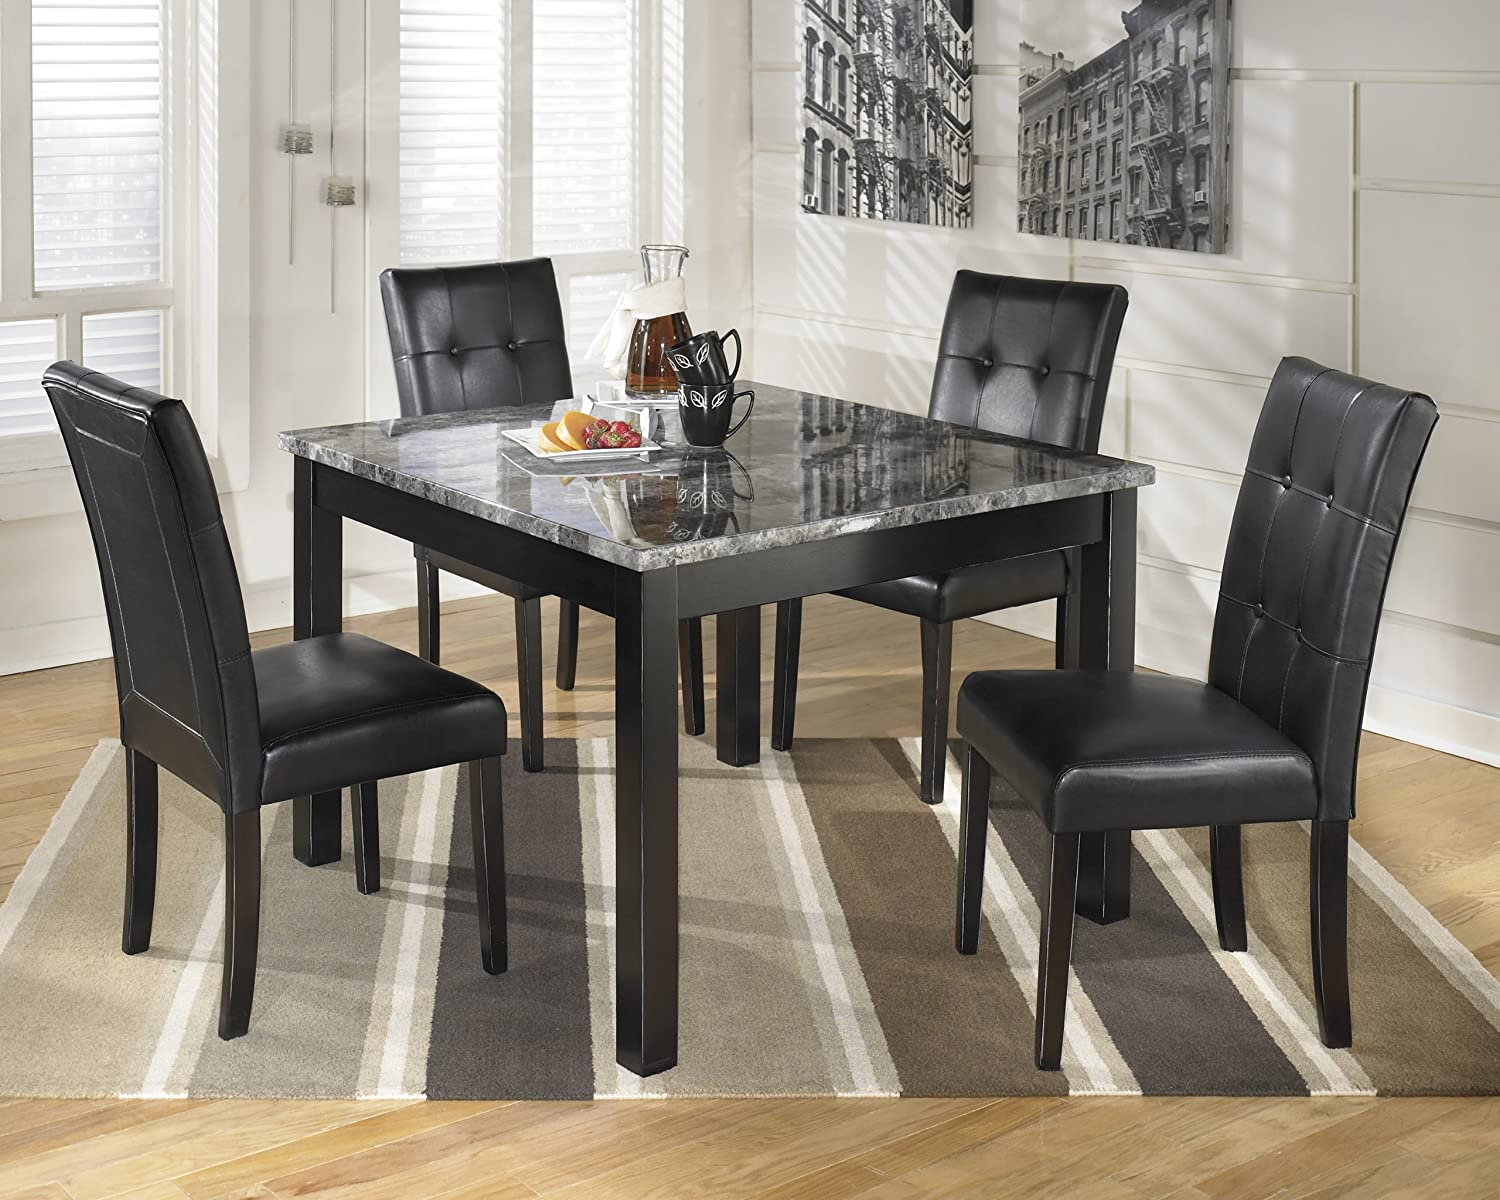 Perfect Amazon.com   Ashley D154 225 Maysville Black Square Dining Room Table Set    Table U0026 Chair Sets